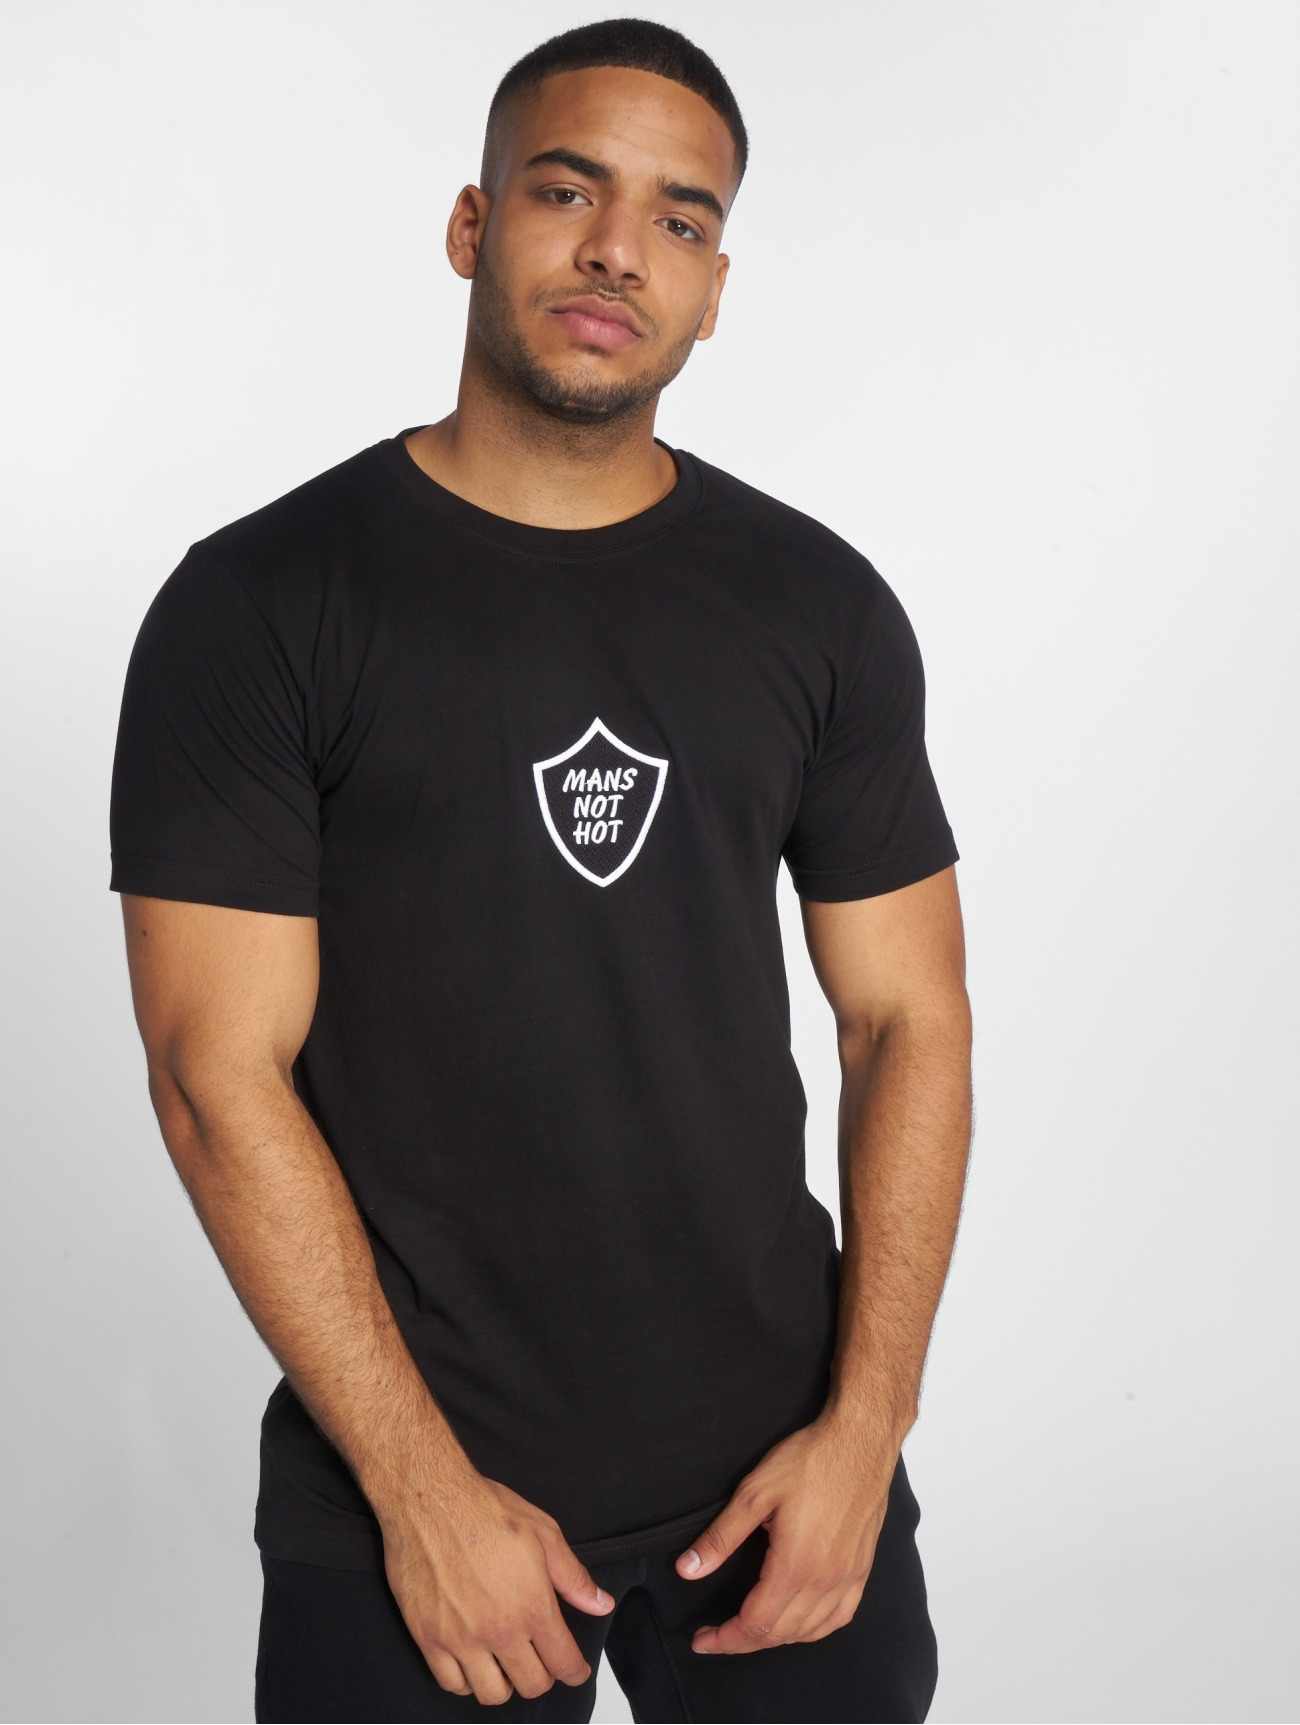 TurnUP | Not Hot  noir Homme T-Shirt  522302| Homme Hauts